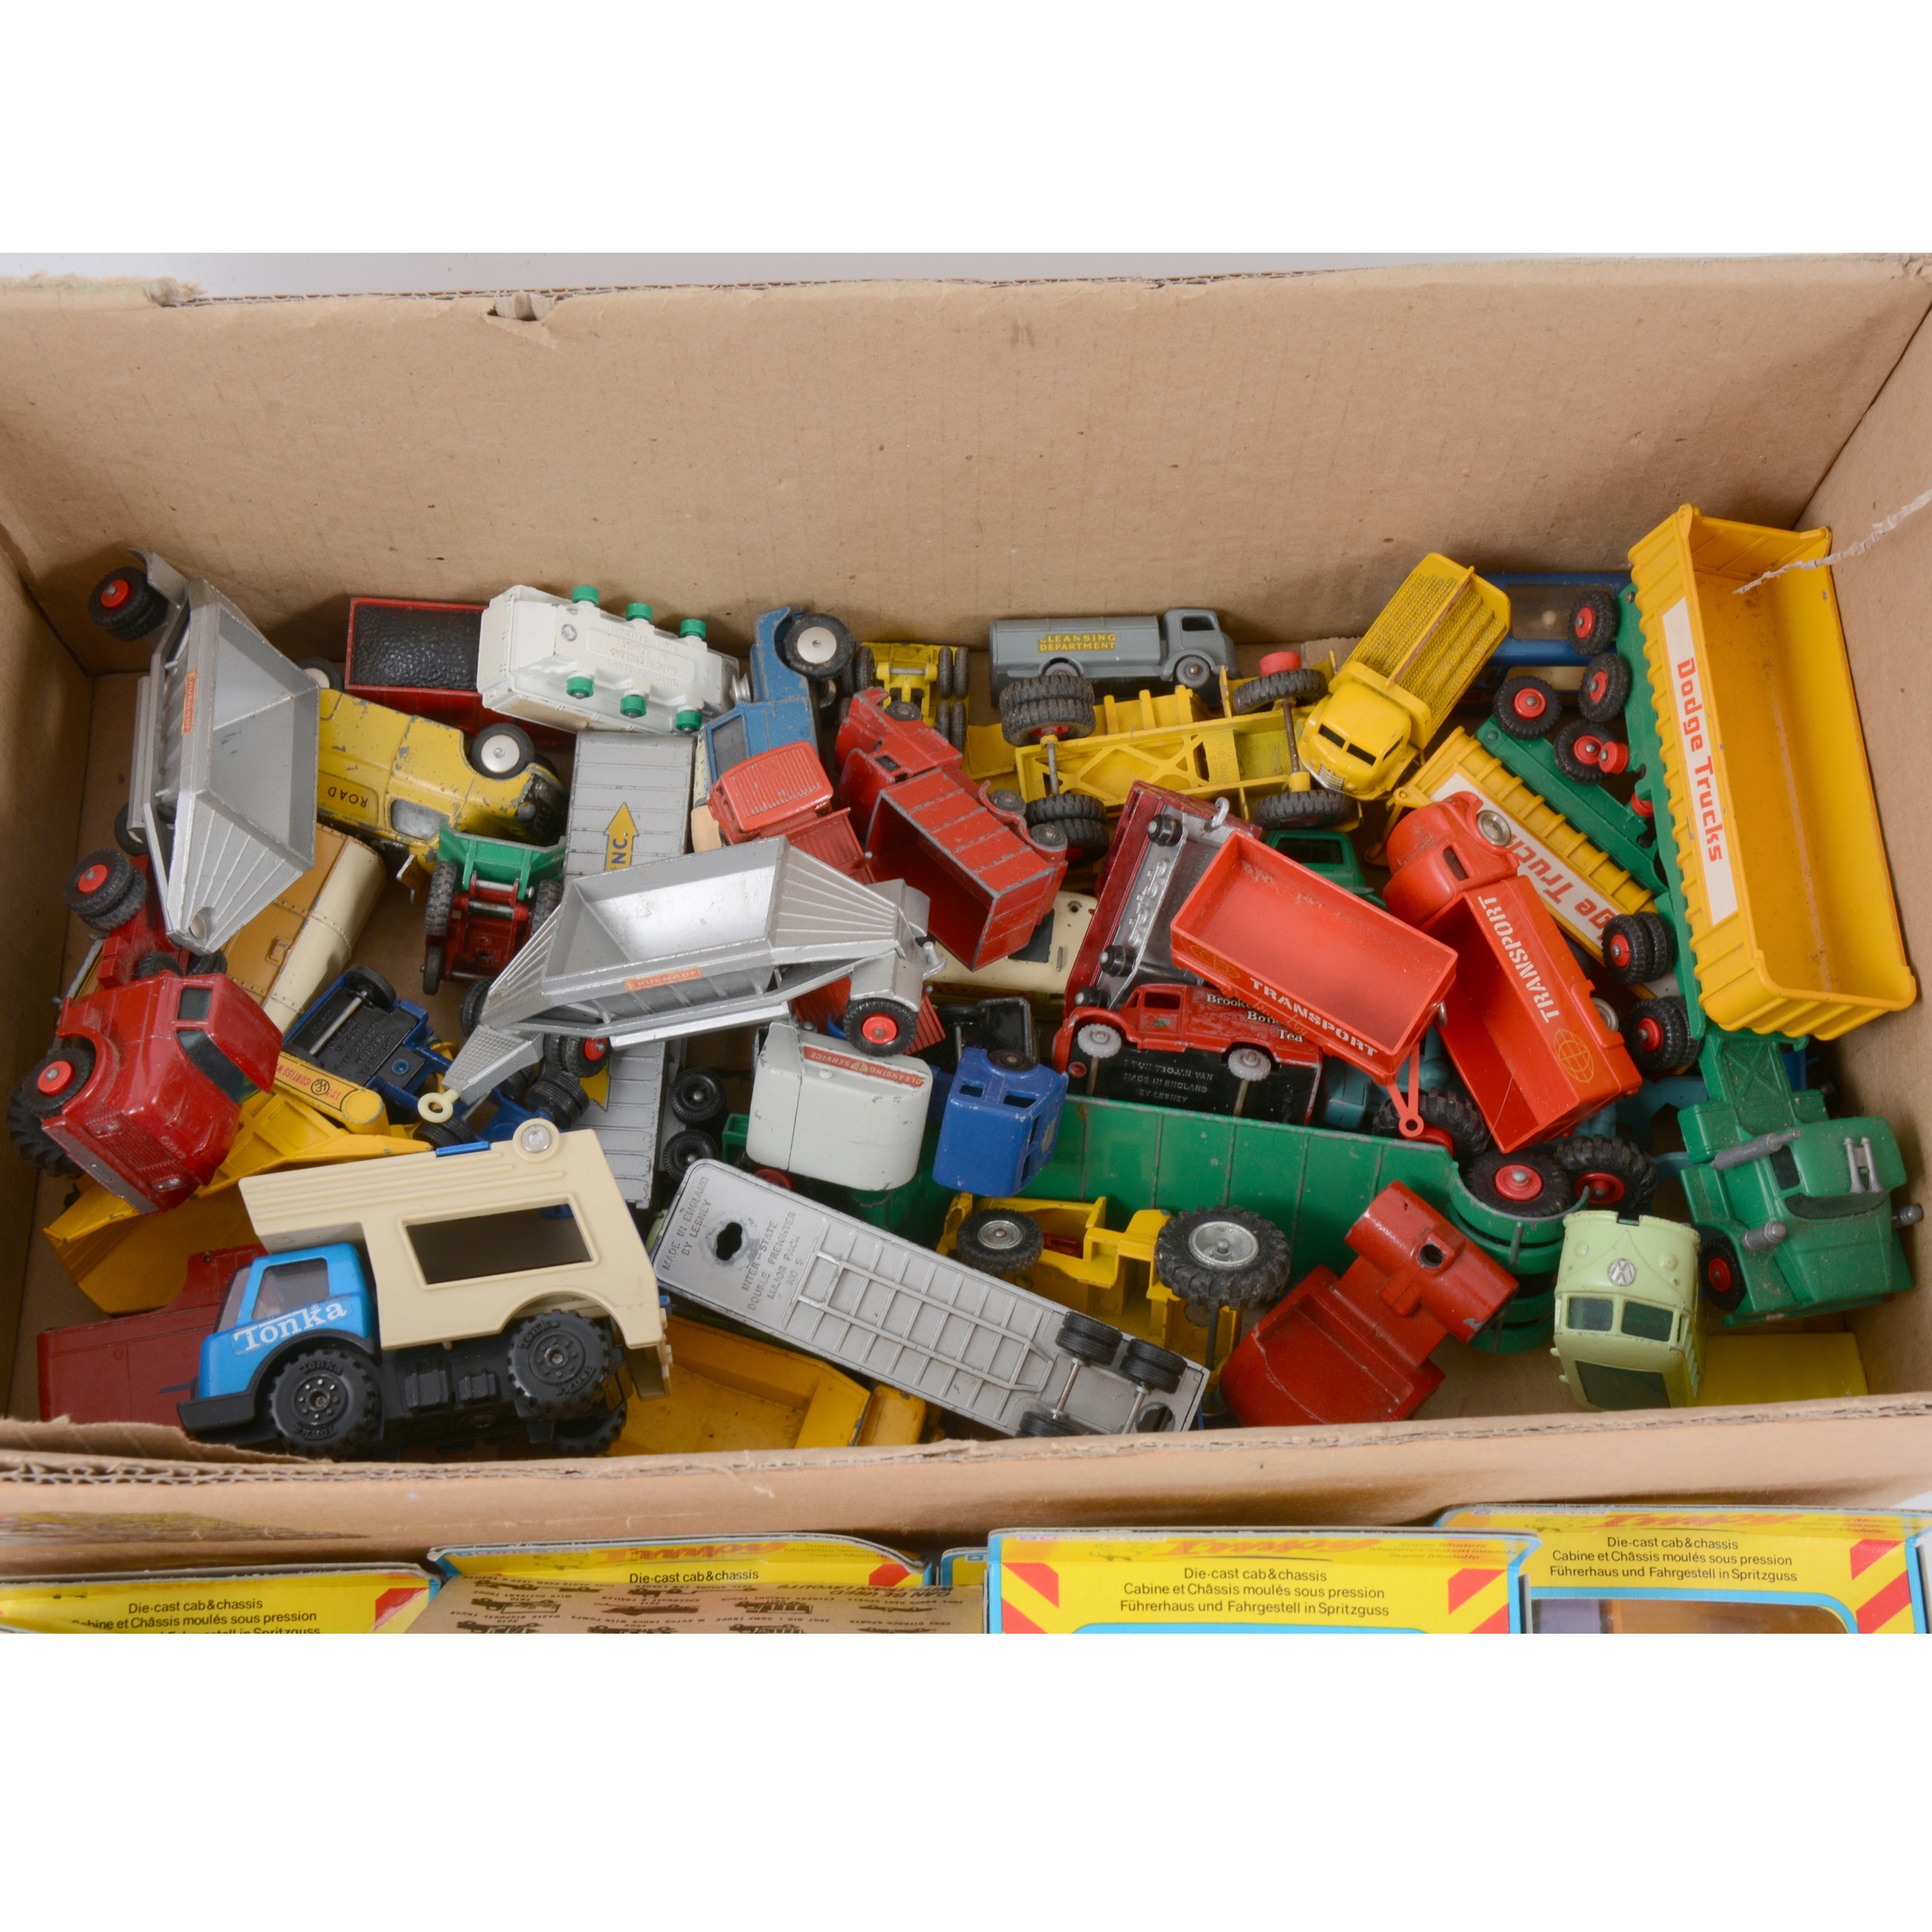 Loose die-cast models and vehicles - Image 2 of 2